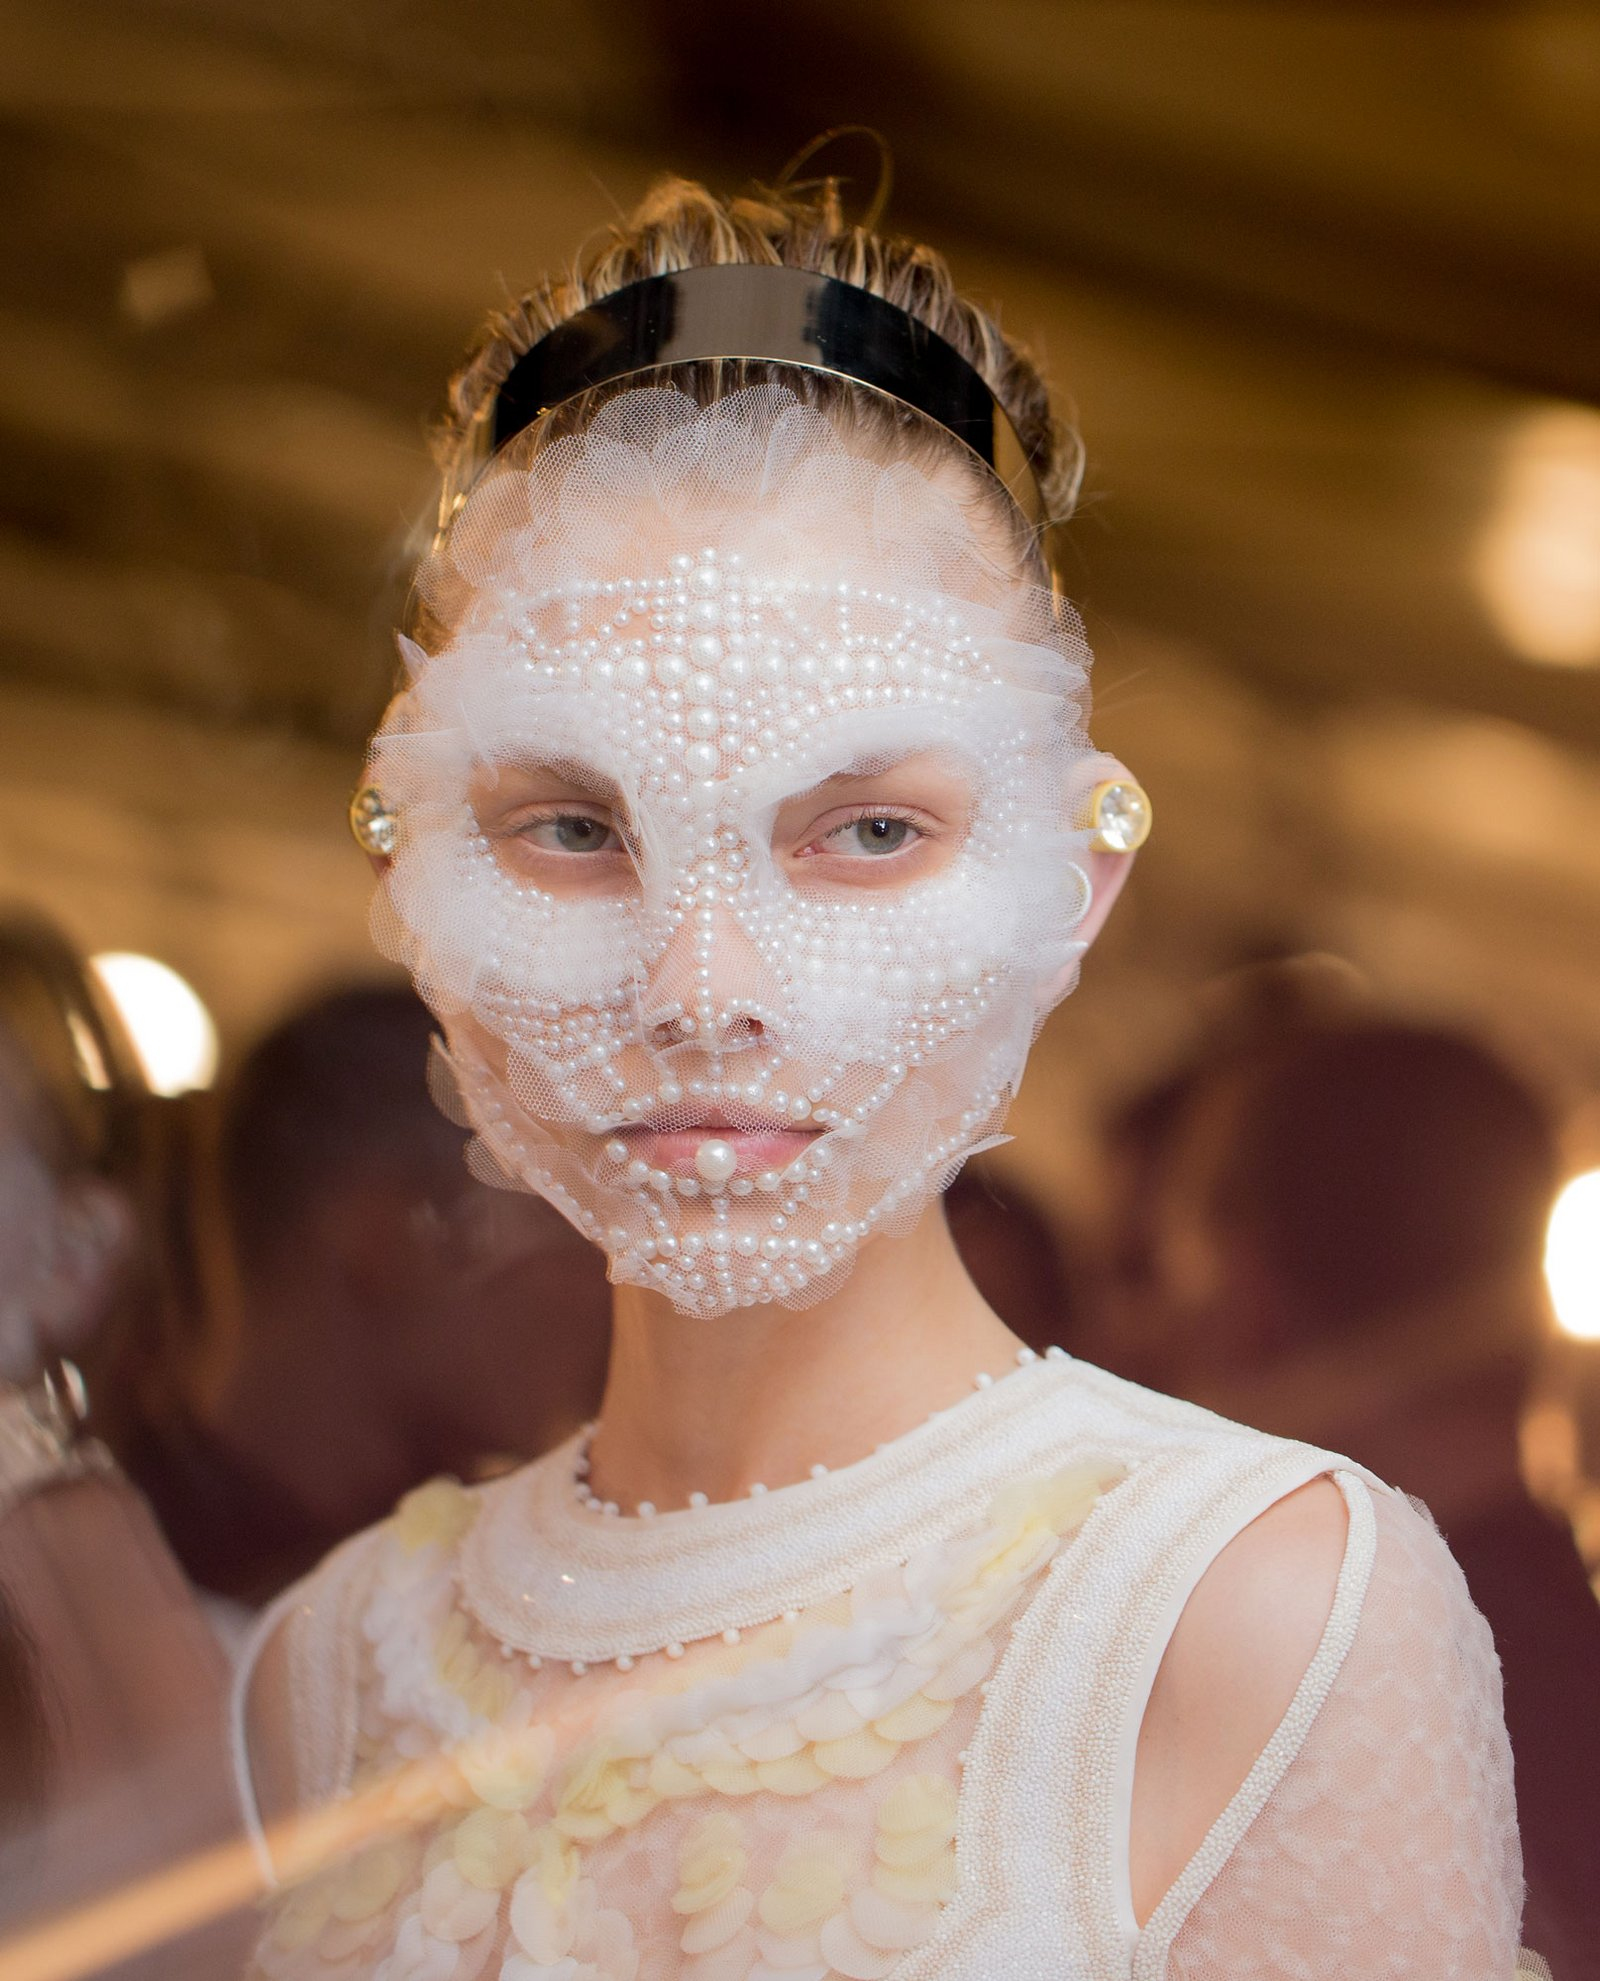 Givenchy facial mask SS16 designed by Pat McGrath photo by Kevin Tachman